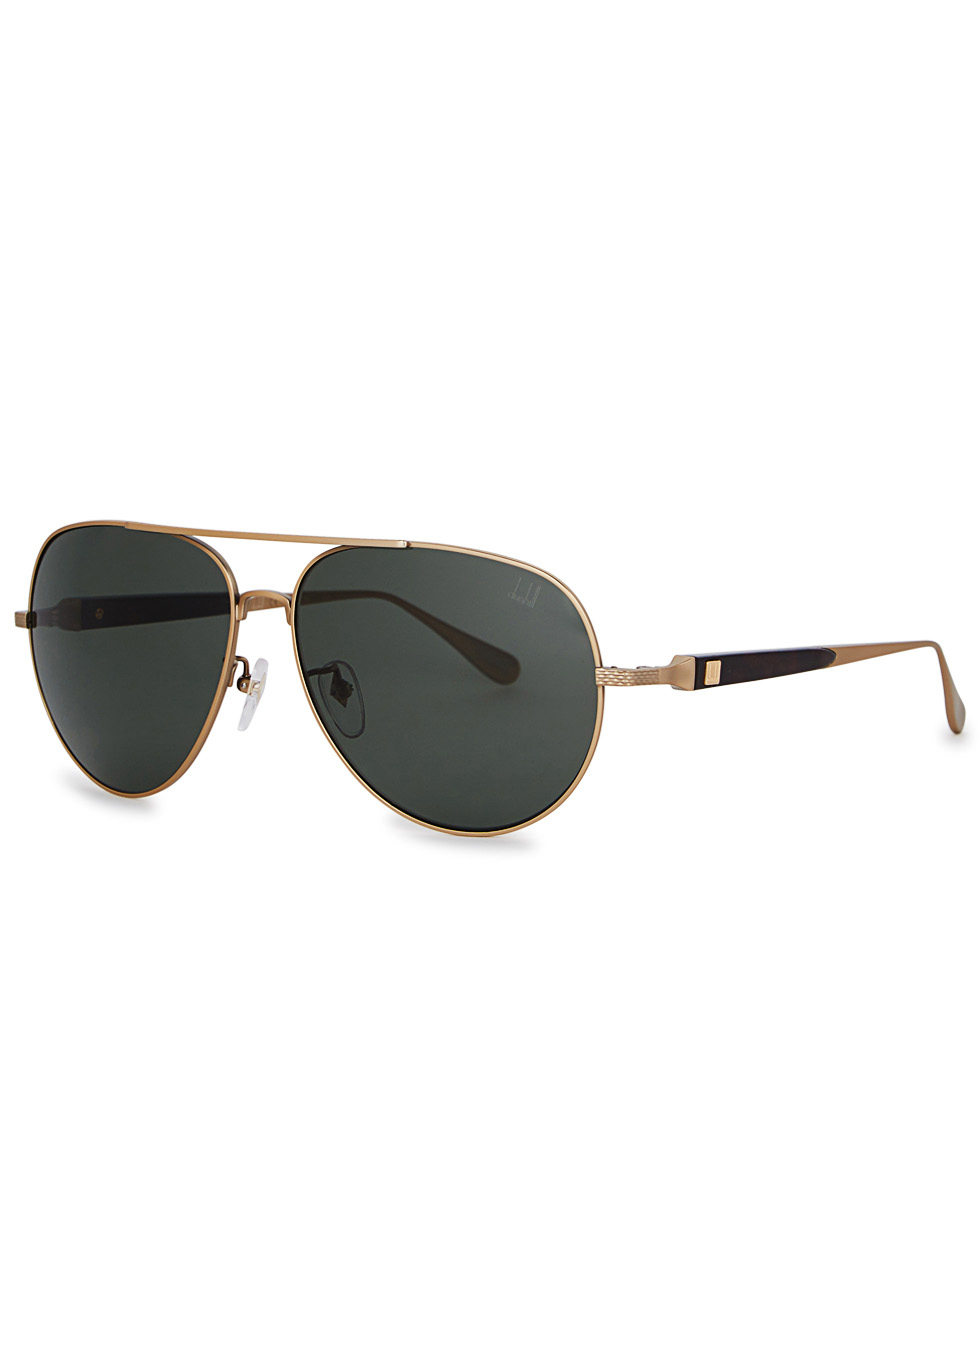 DUNHILL LONDON Gold Tone Aviator-Style Sunglasses in Green